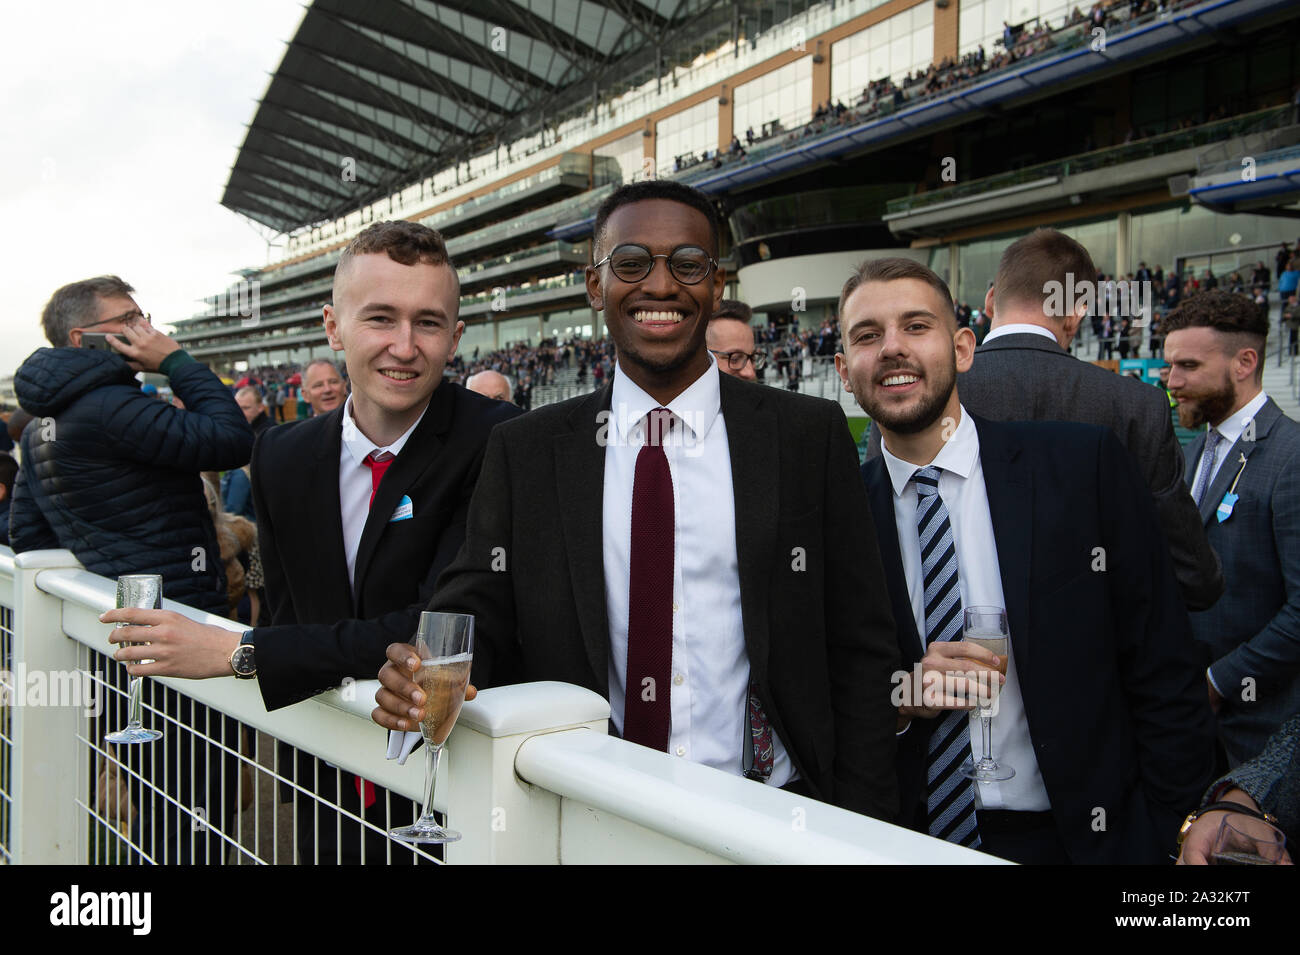 Autumn Racing Weekend & Ascot Beer Festival, Ascot Racecourse, Ascot, Berkshire, UK. 4th October, 2019. A boys day out. Credit: Maureen McLean/Alamy Stock Photo